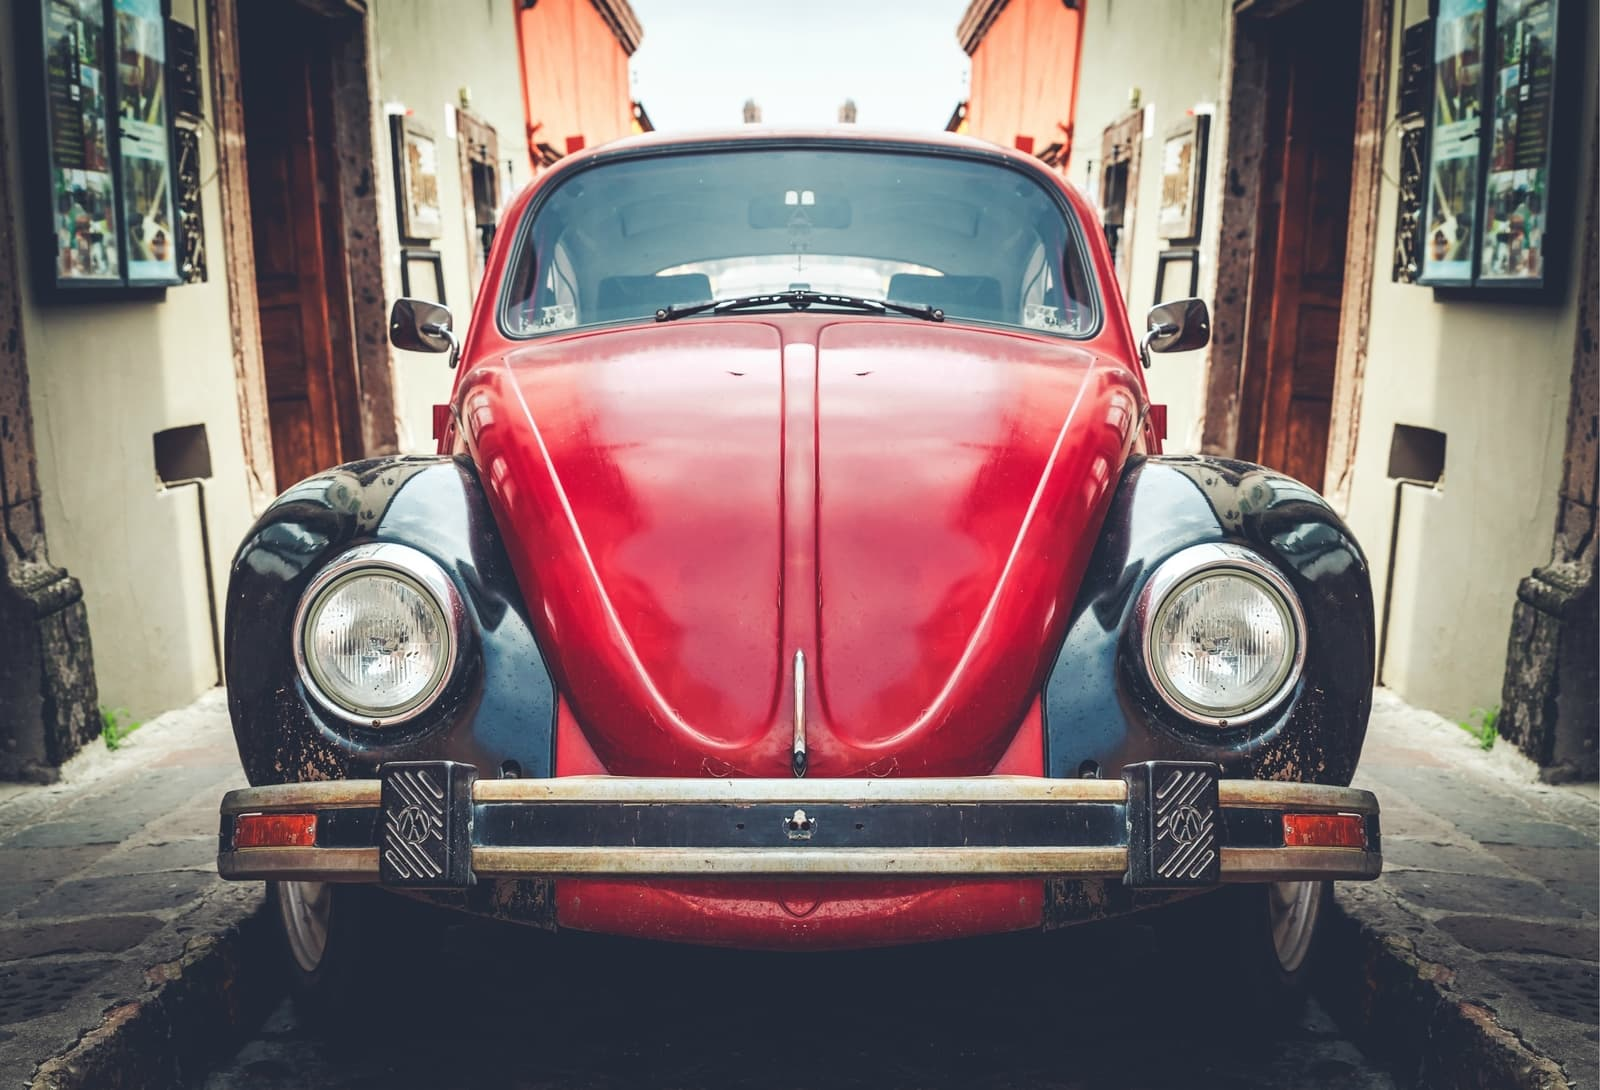 used red car